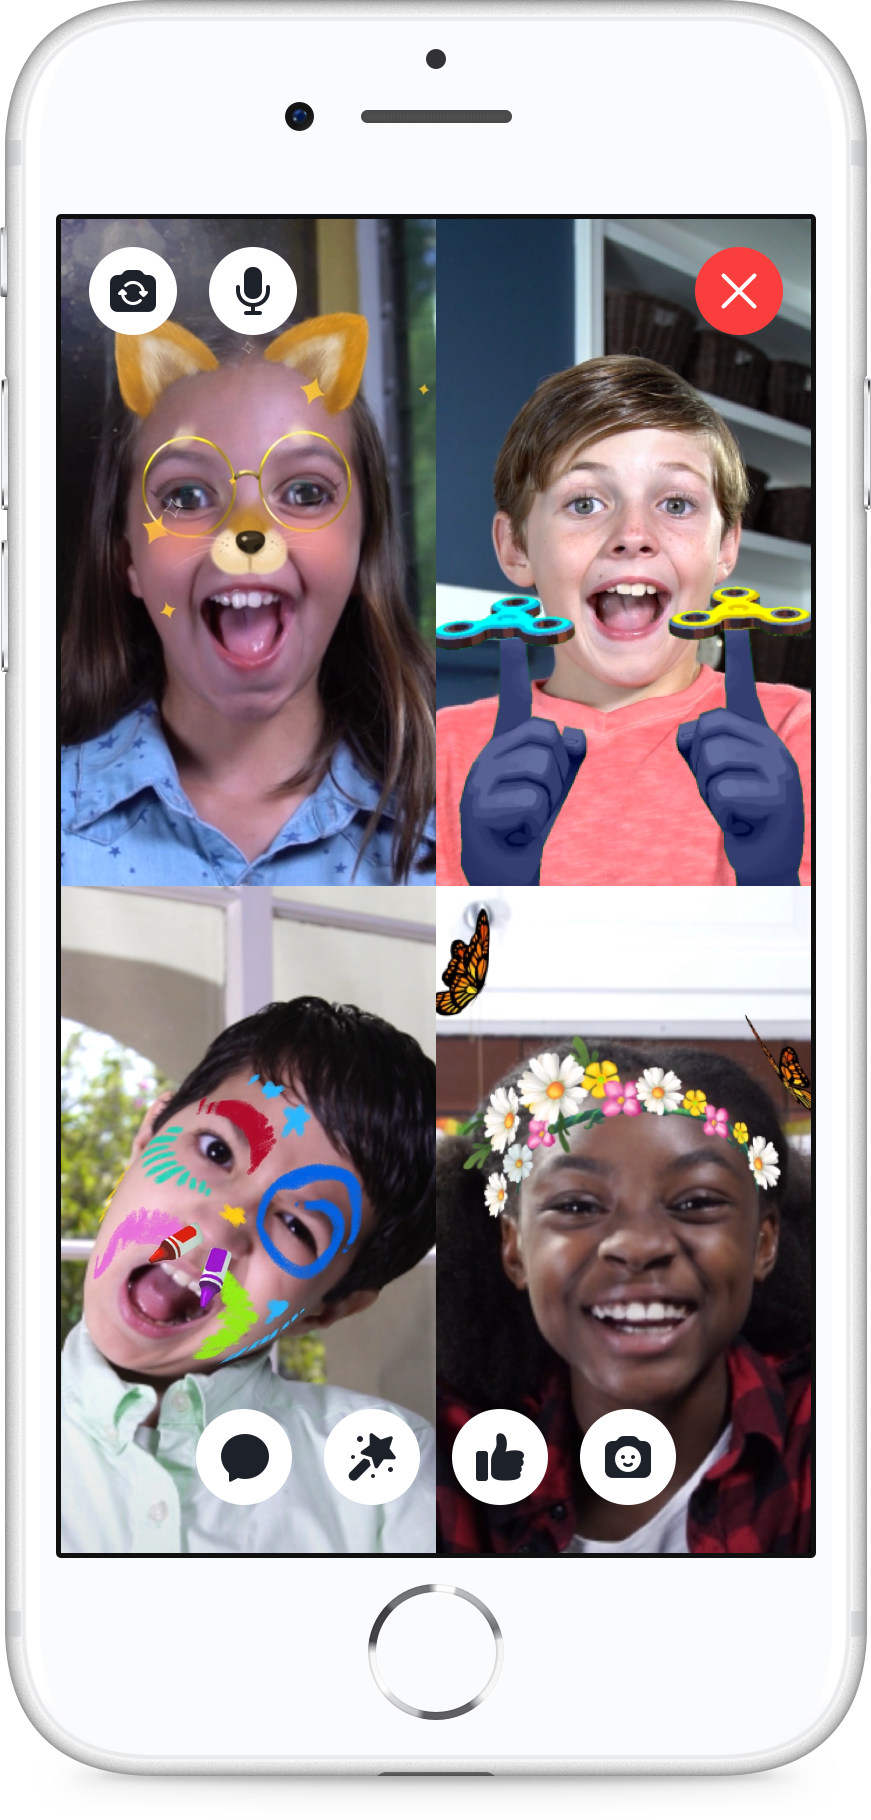 The Messenger Kids app lets users send text-based messages, video chat, tack on virtual stickers and masks, but has stricter rules and parental controls in place. Source: Facebook